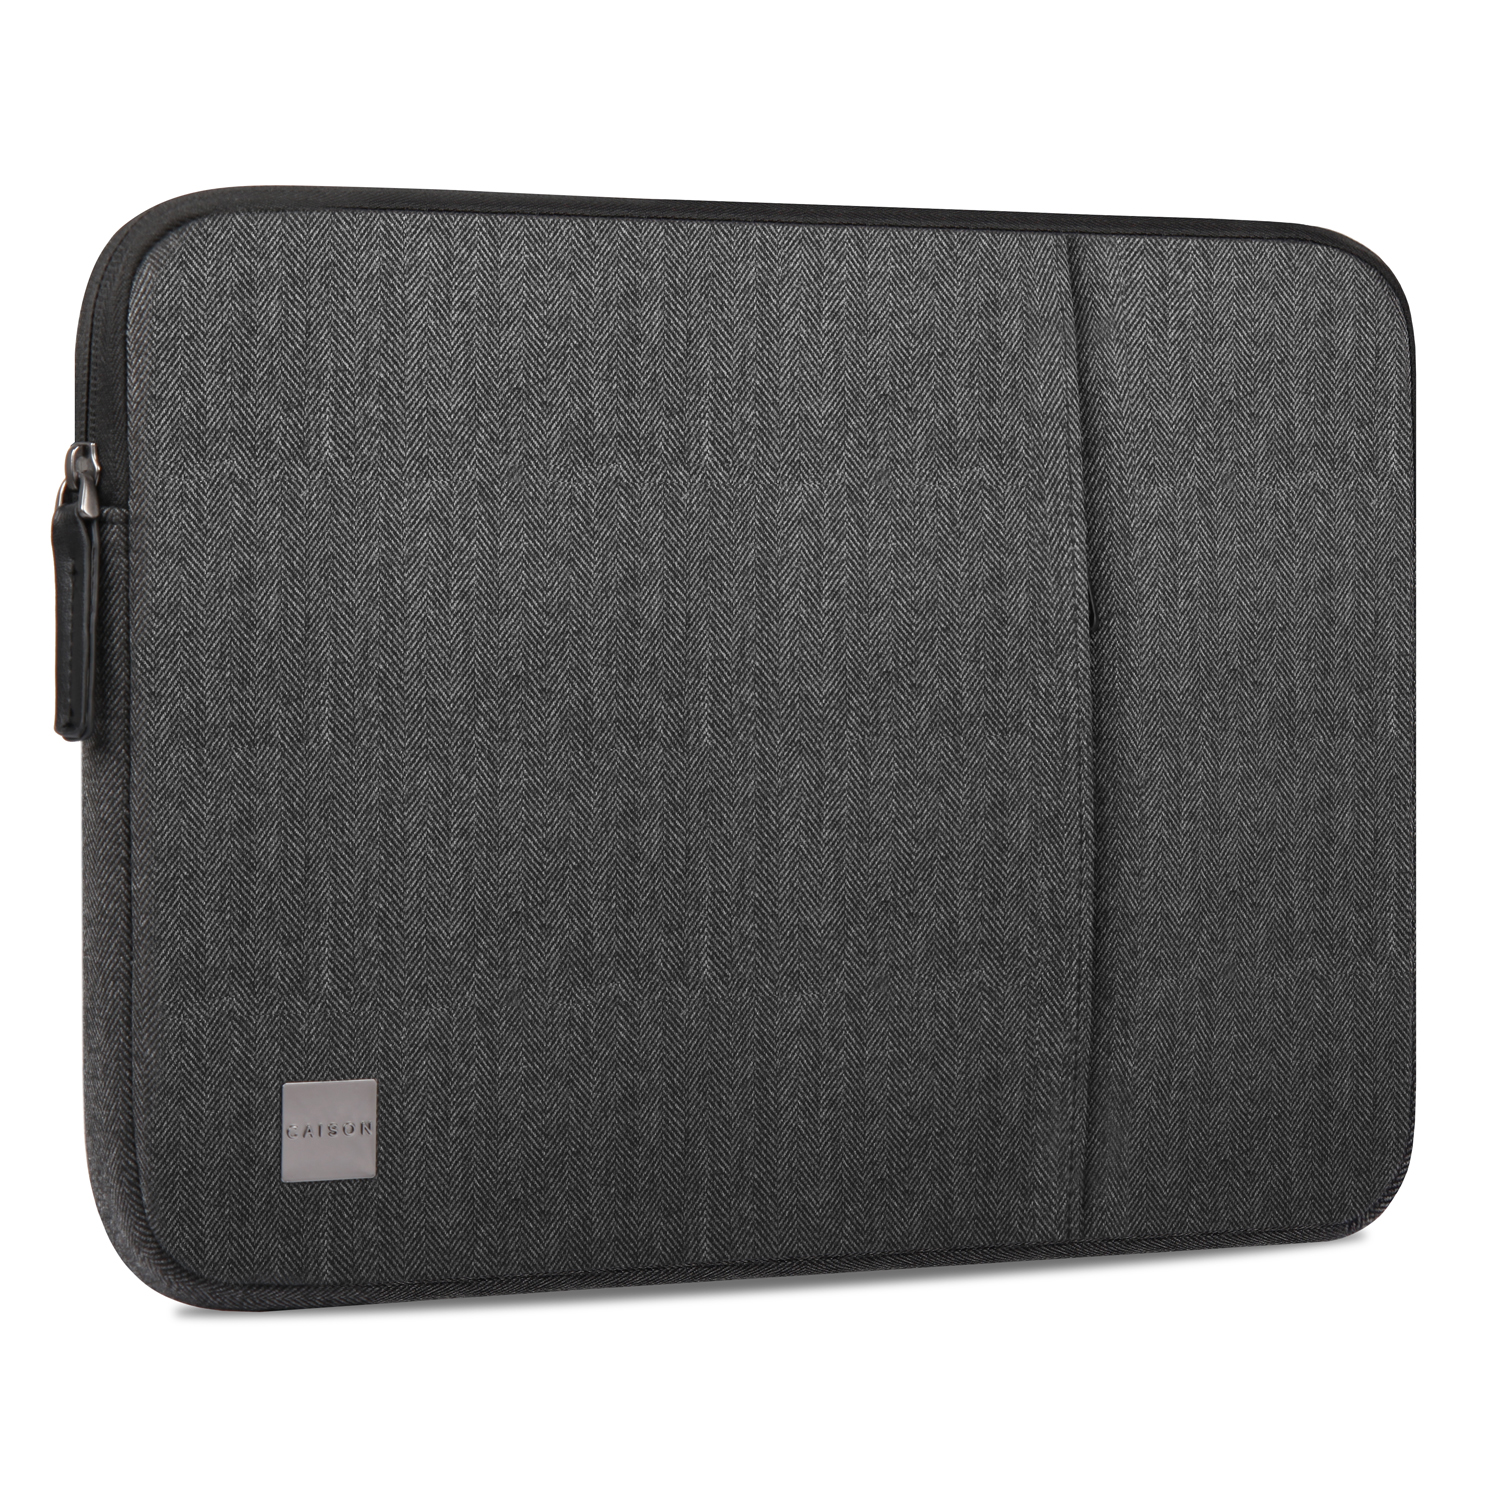 Surface ProCase 13-13.5 Inch Laptop Sleeve Case Cover Bag for Macbook Pro Air